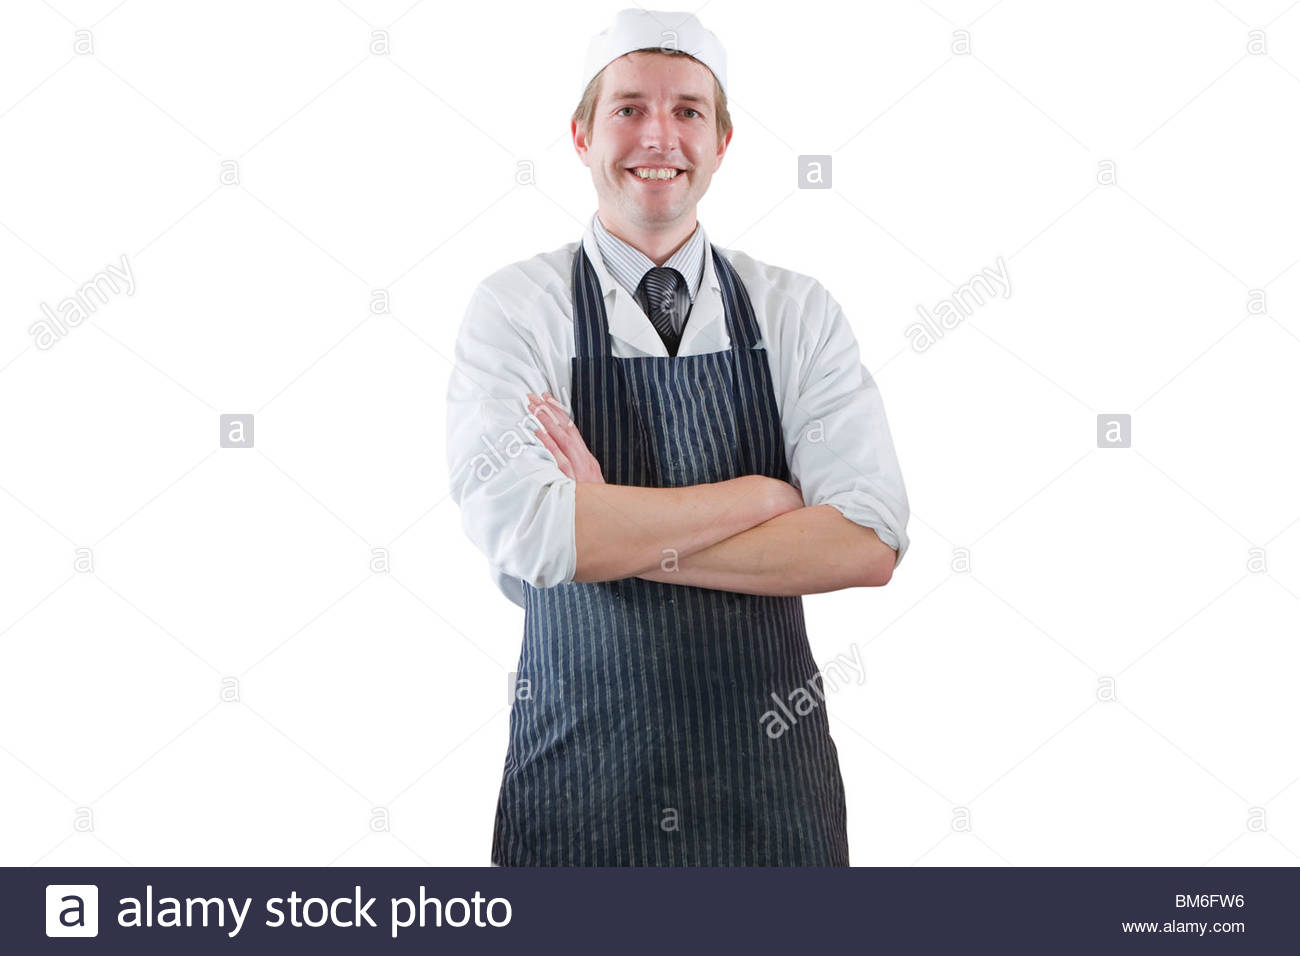 Smiling butcher with arms crossed in apron and cap - Stock Image